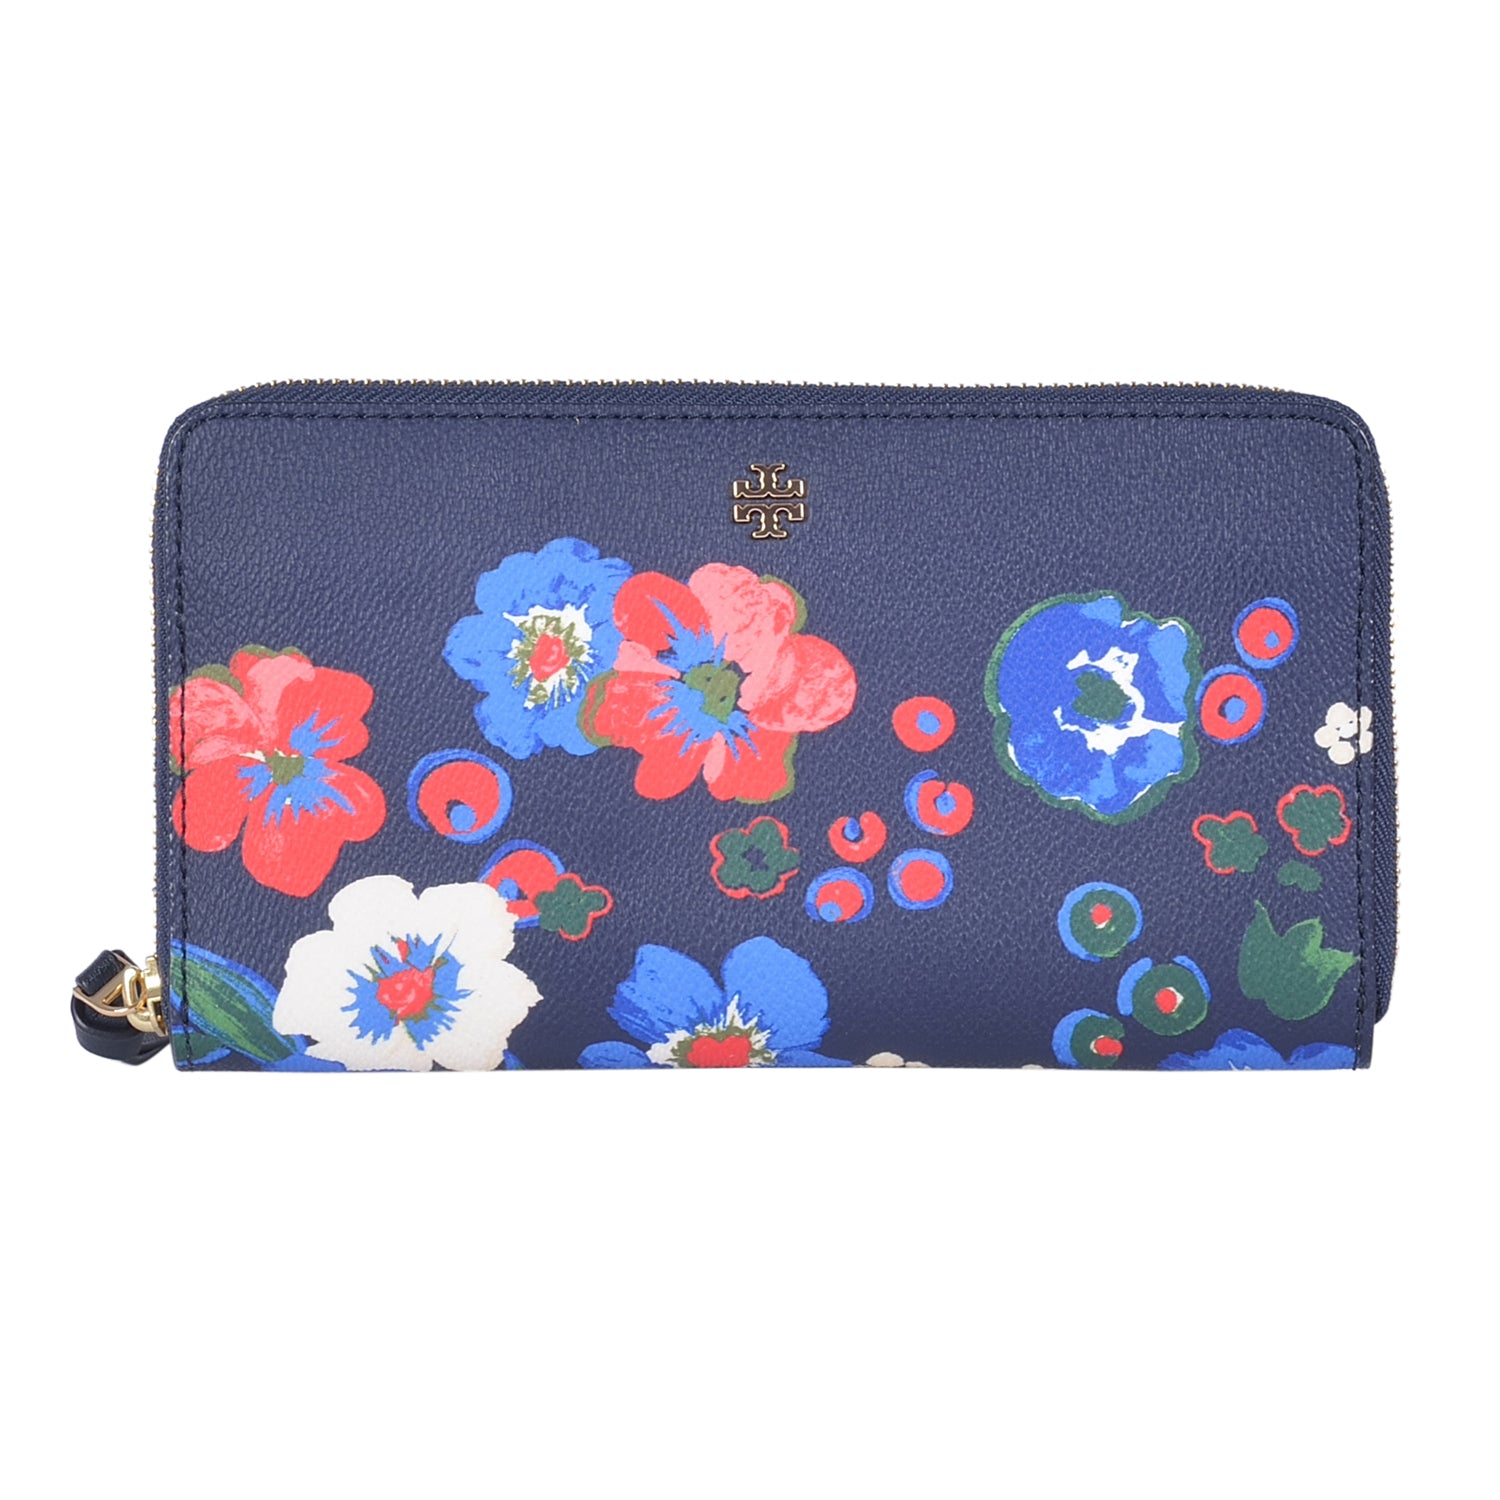 TORY BURCH PANSY BOUQUET WALLET